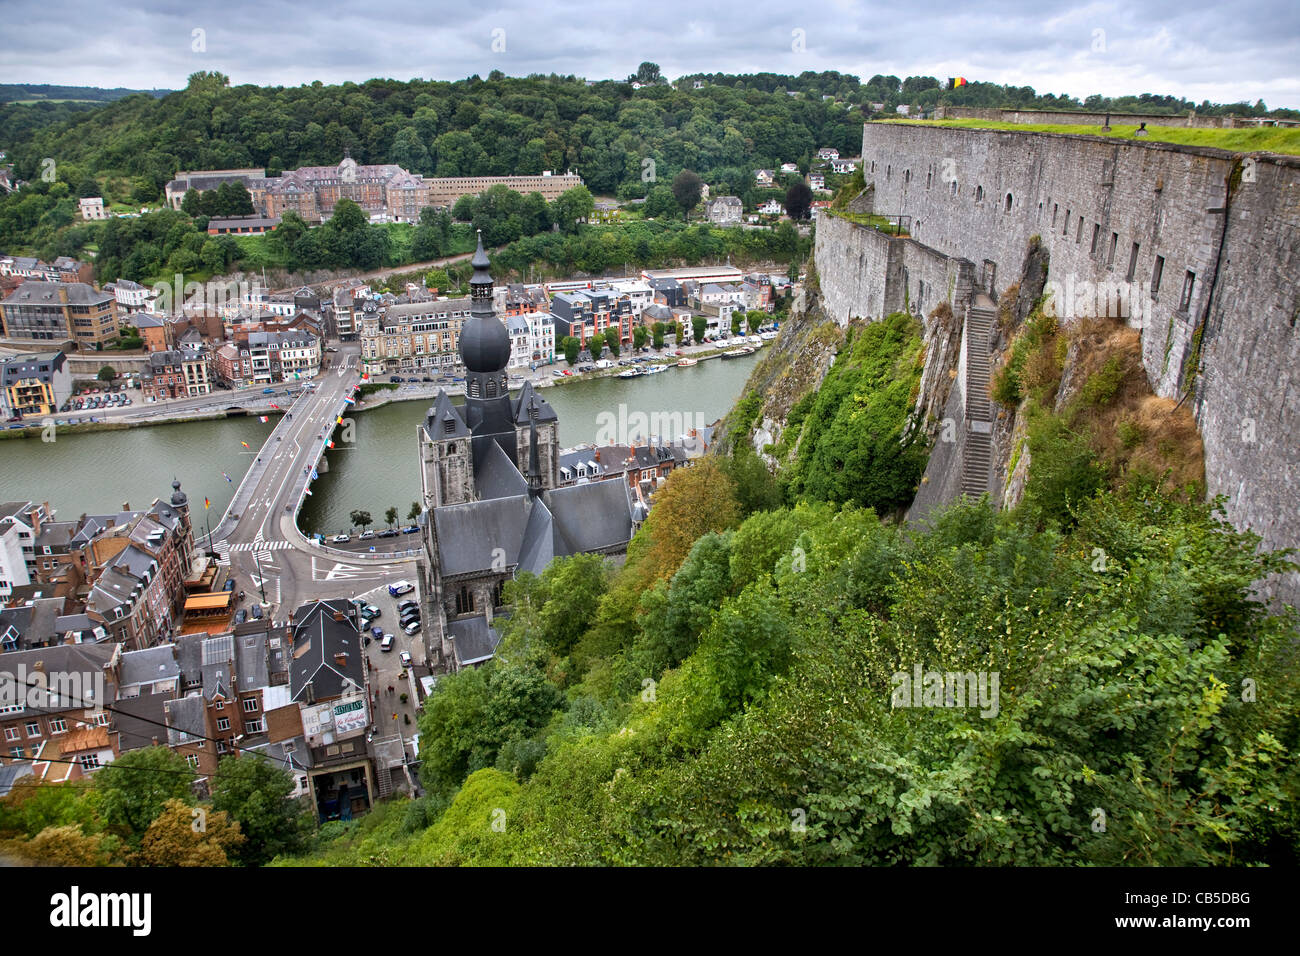 View over the town Dinant and the Collegiate Church of Notre-Dame along the river Meuse, Belgium - Stock Image